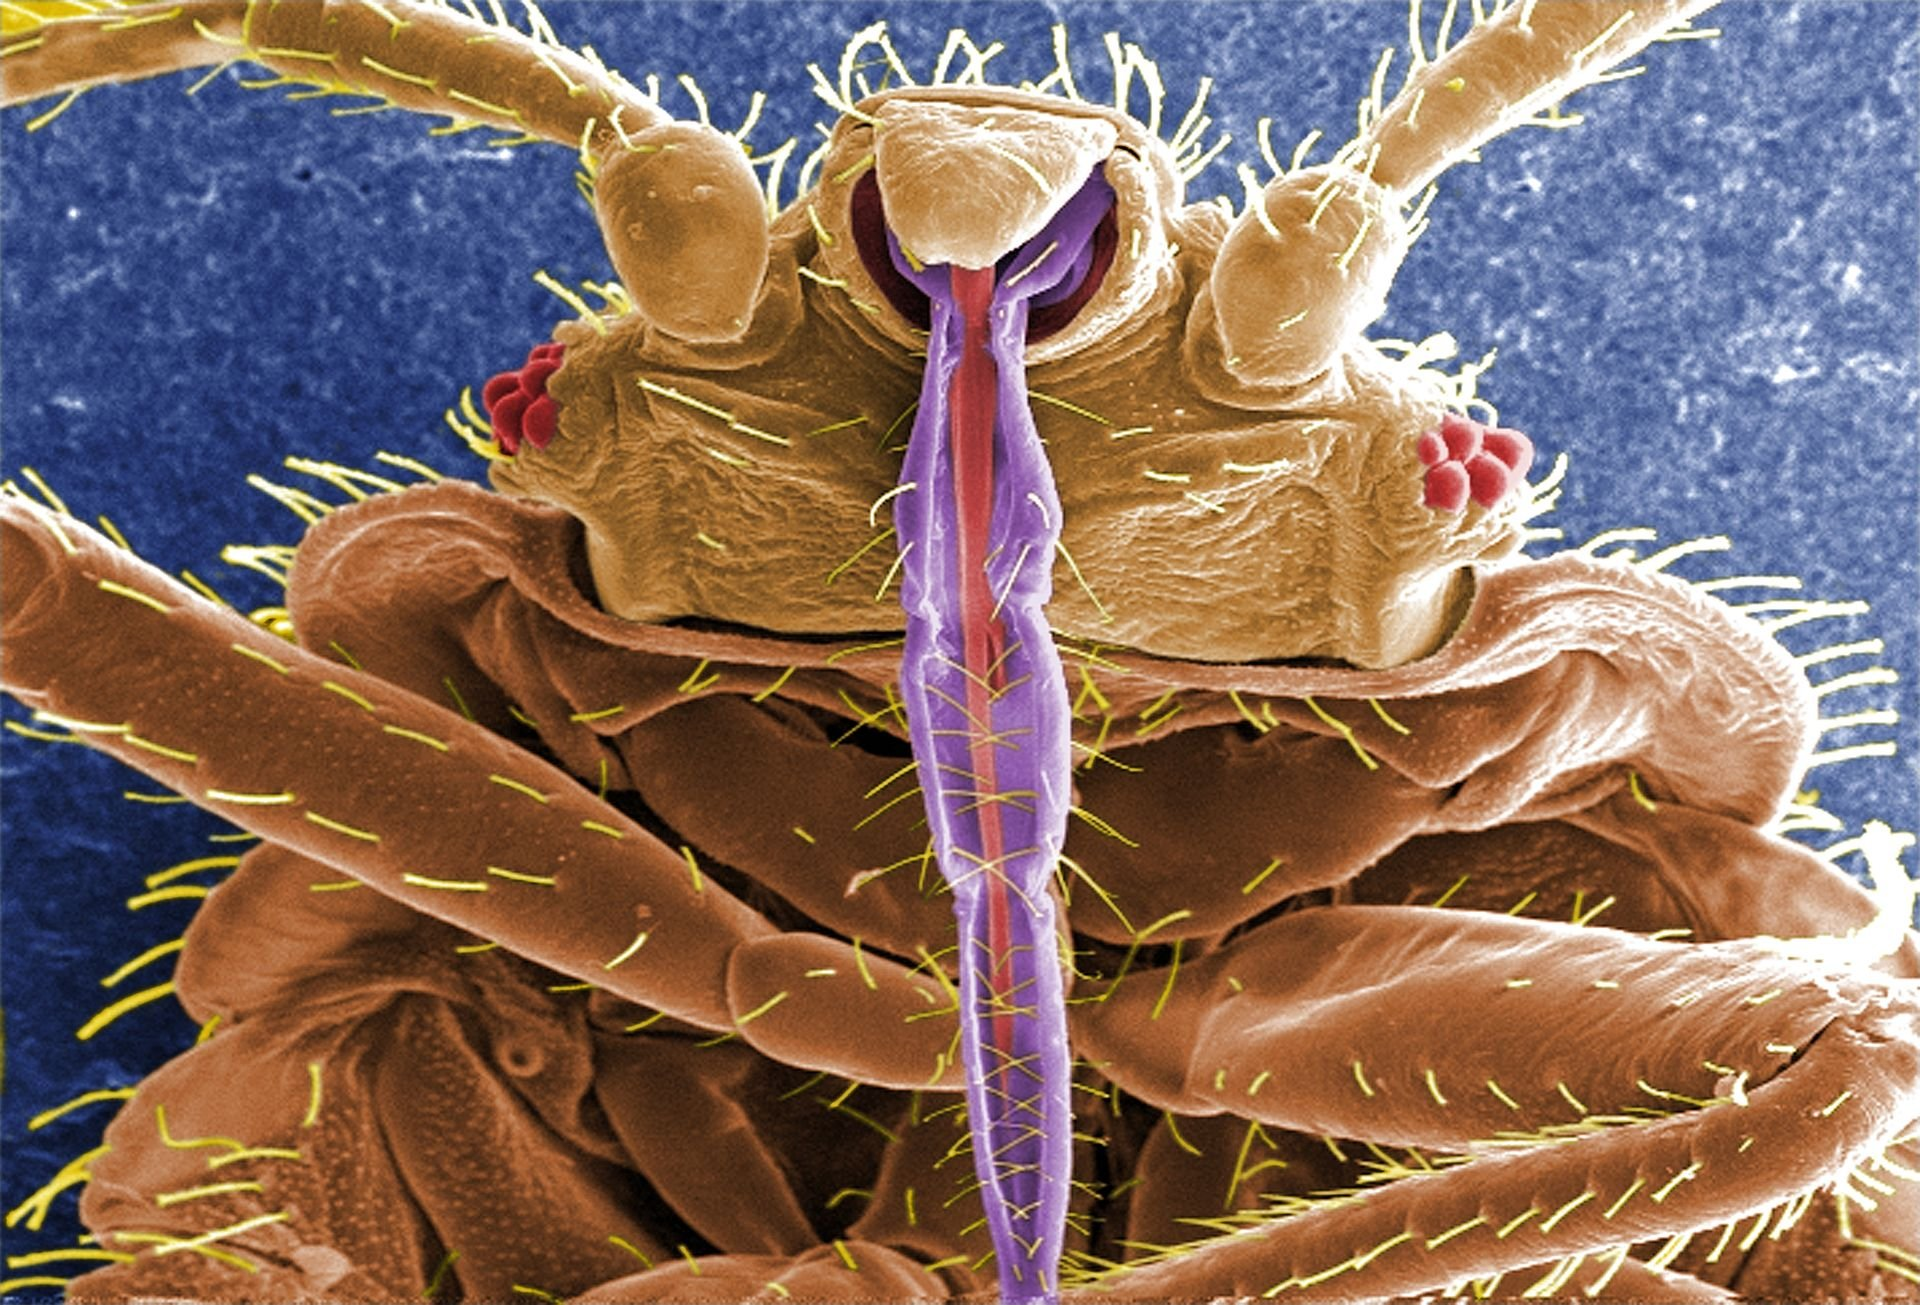 Closeup of a bedbug, a pesky insect that is notoriously difficult to get rid of. (Source: CDC)